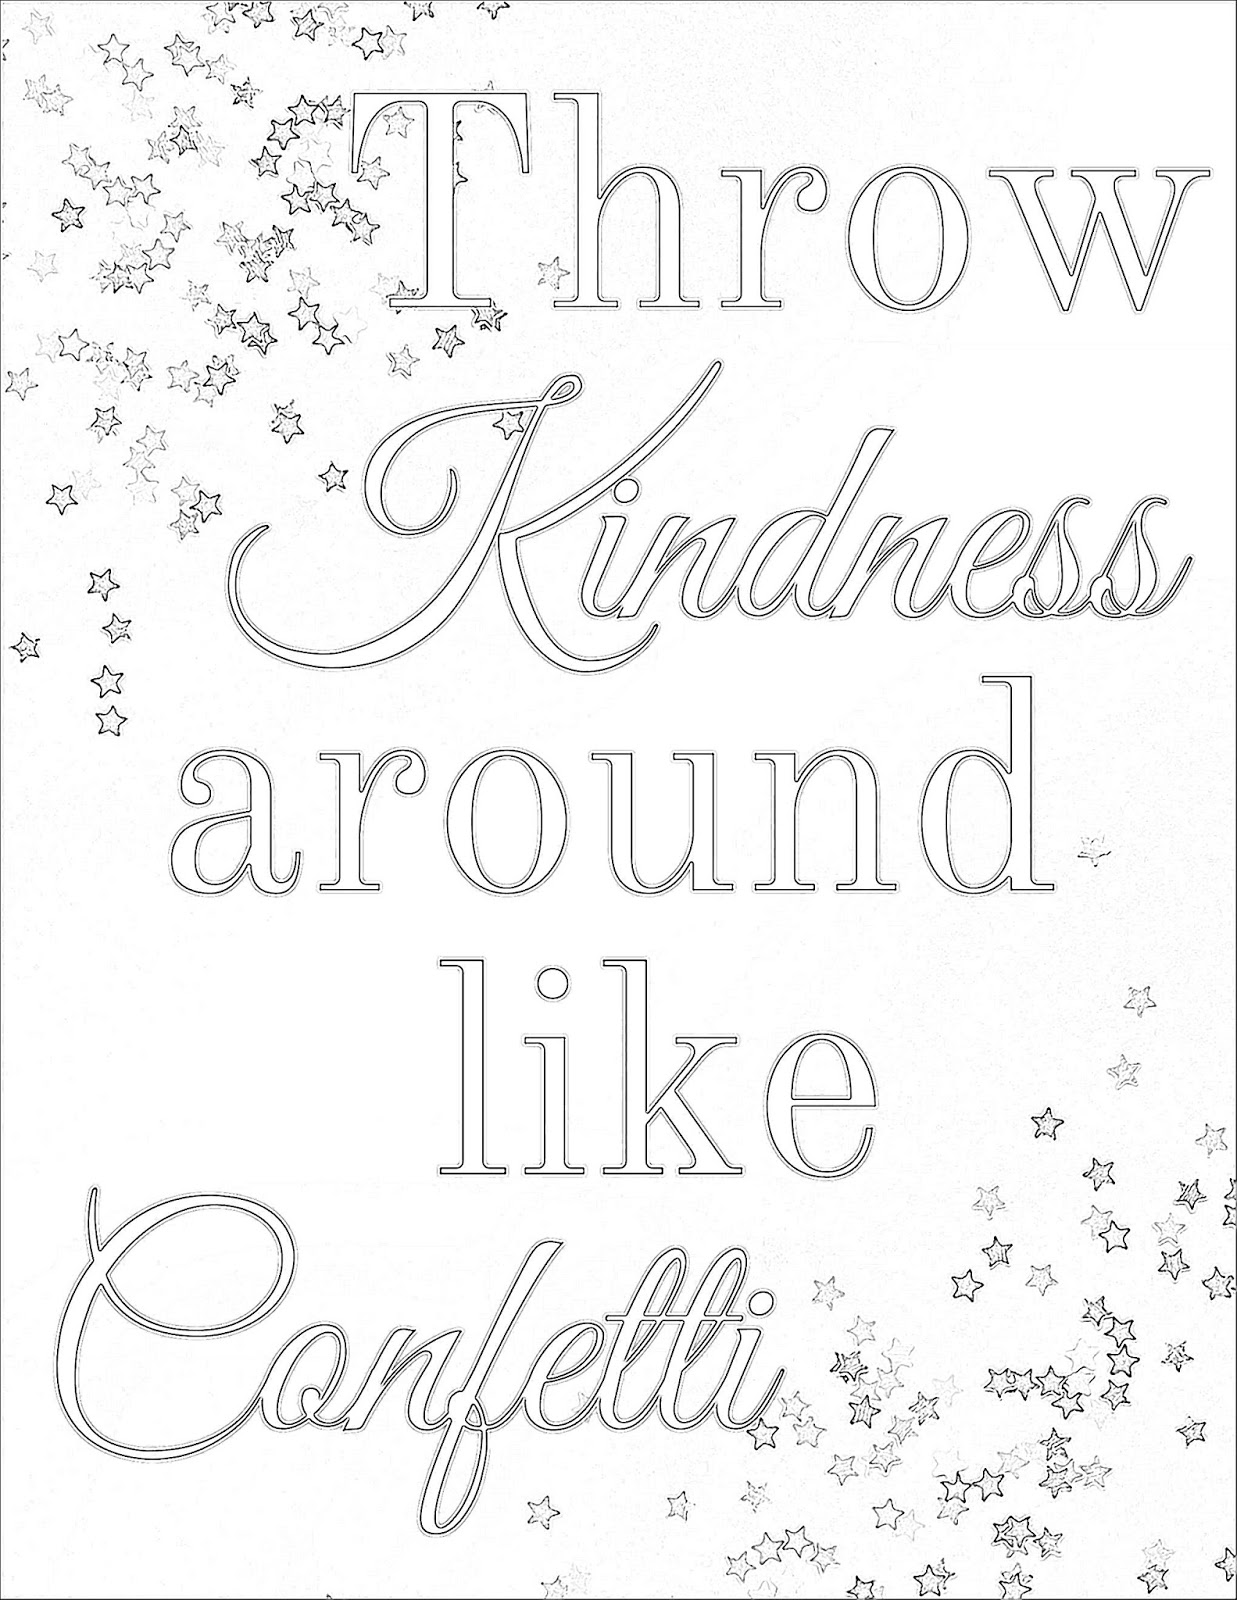 Coloring pages kindness - Throw Kindness Around Like Confetti Coloring Page